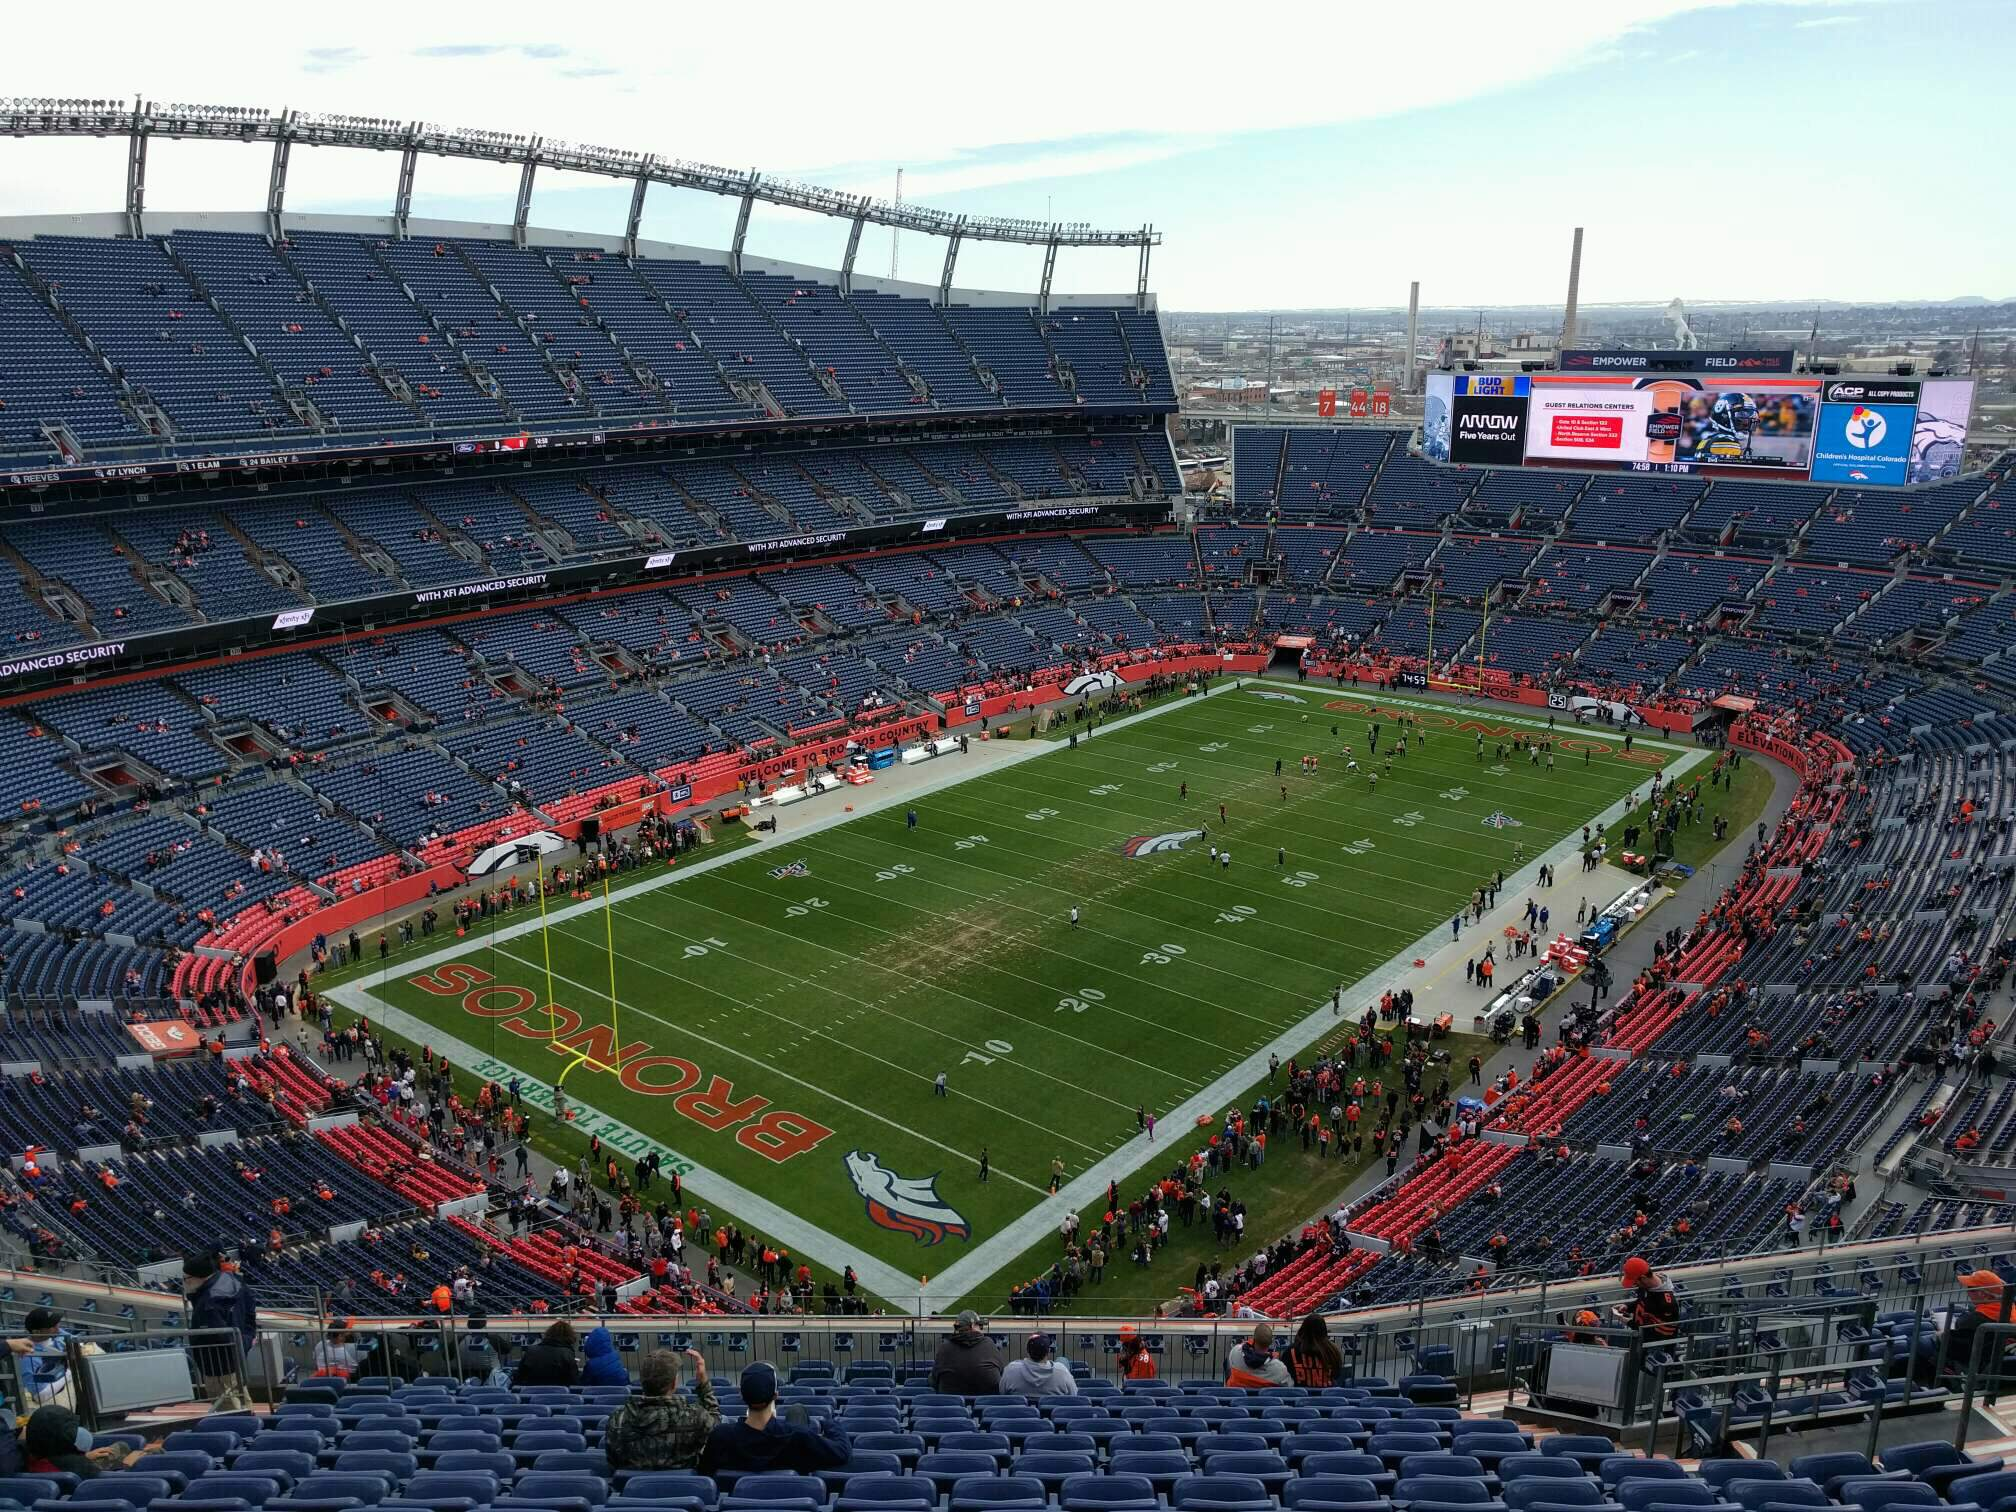 Empower Field at Mile High Stadium Section 516 Row 18 Seat 13